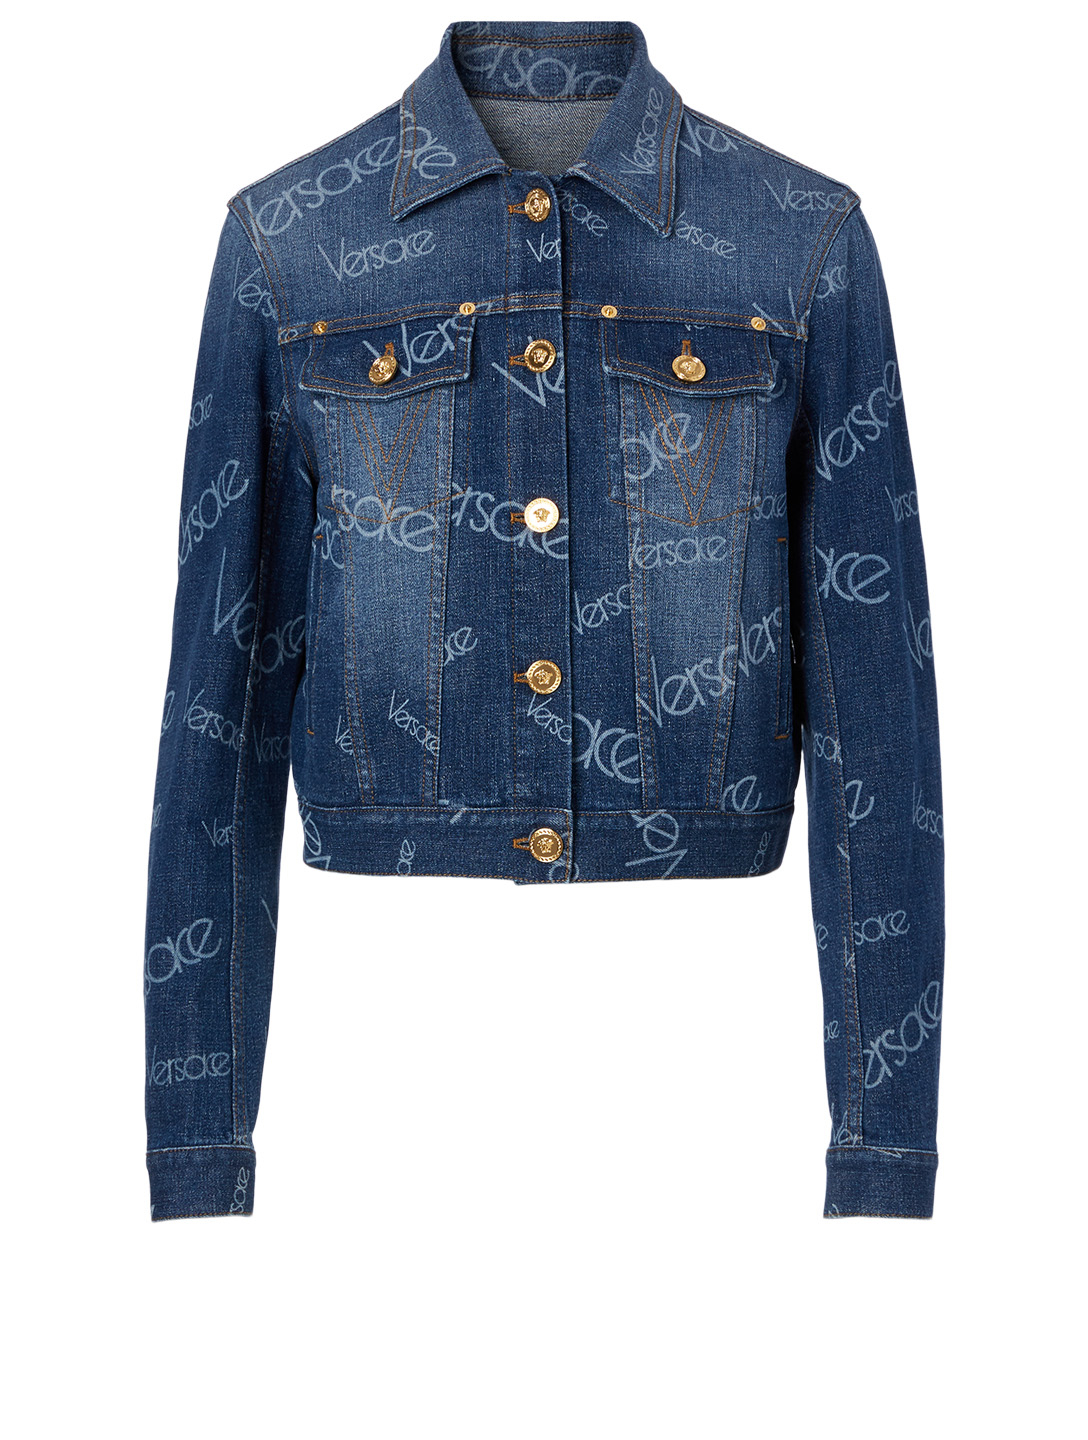 VERSACE Logo Denim Jacket Women's Blue